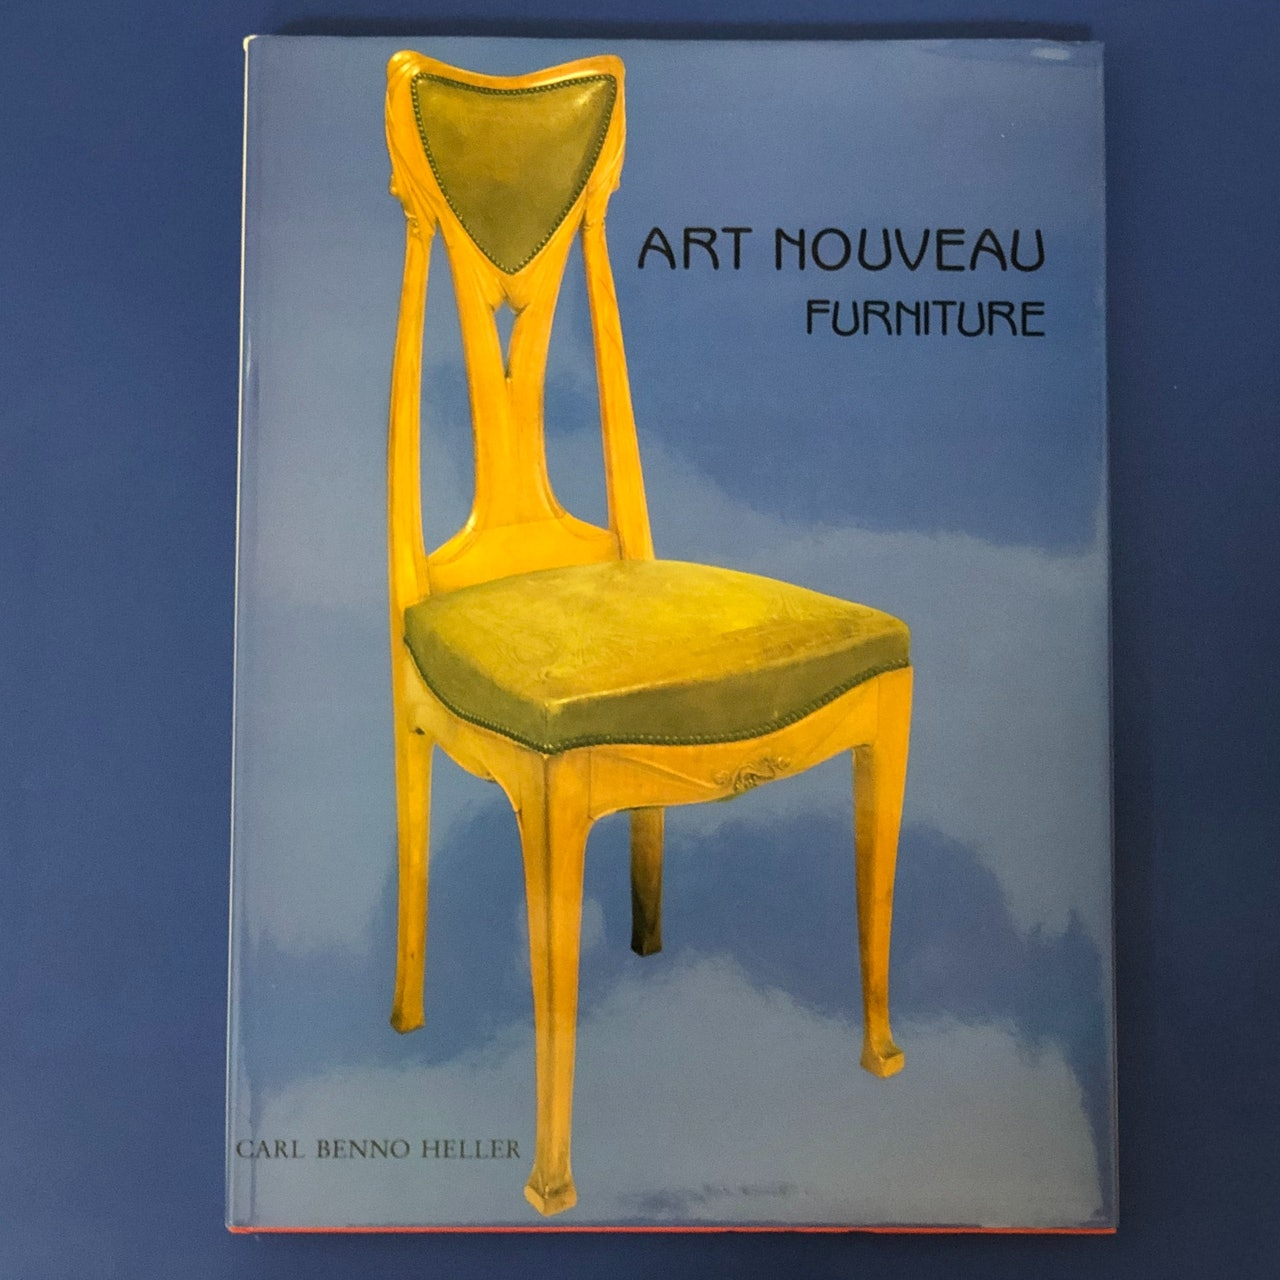 Book: Art Noveau Furniture